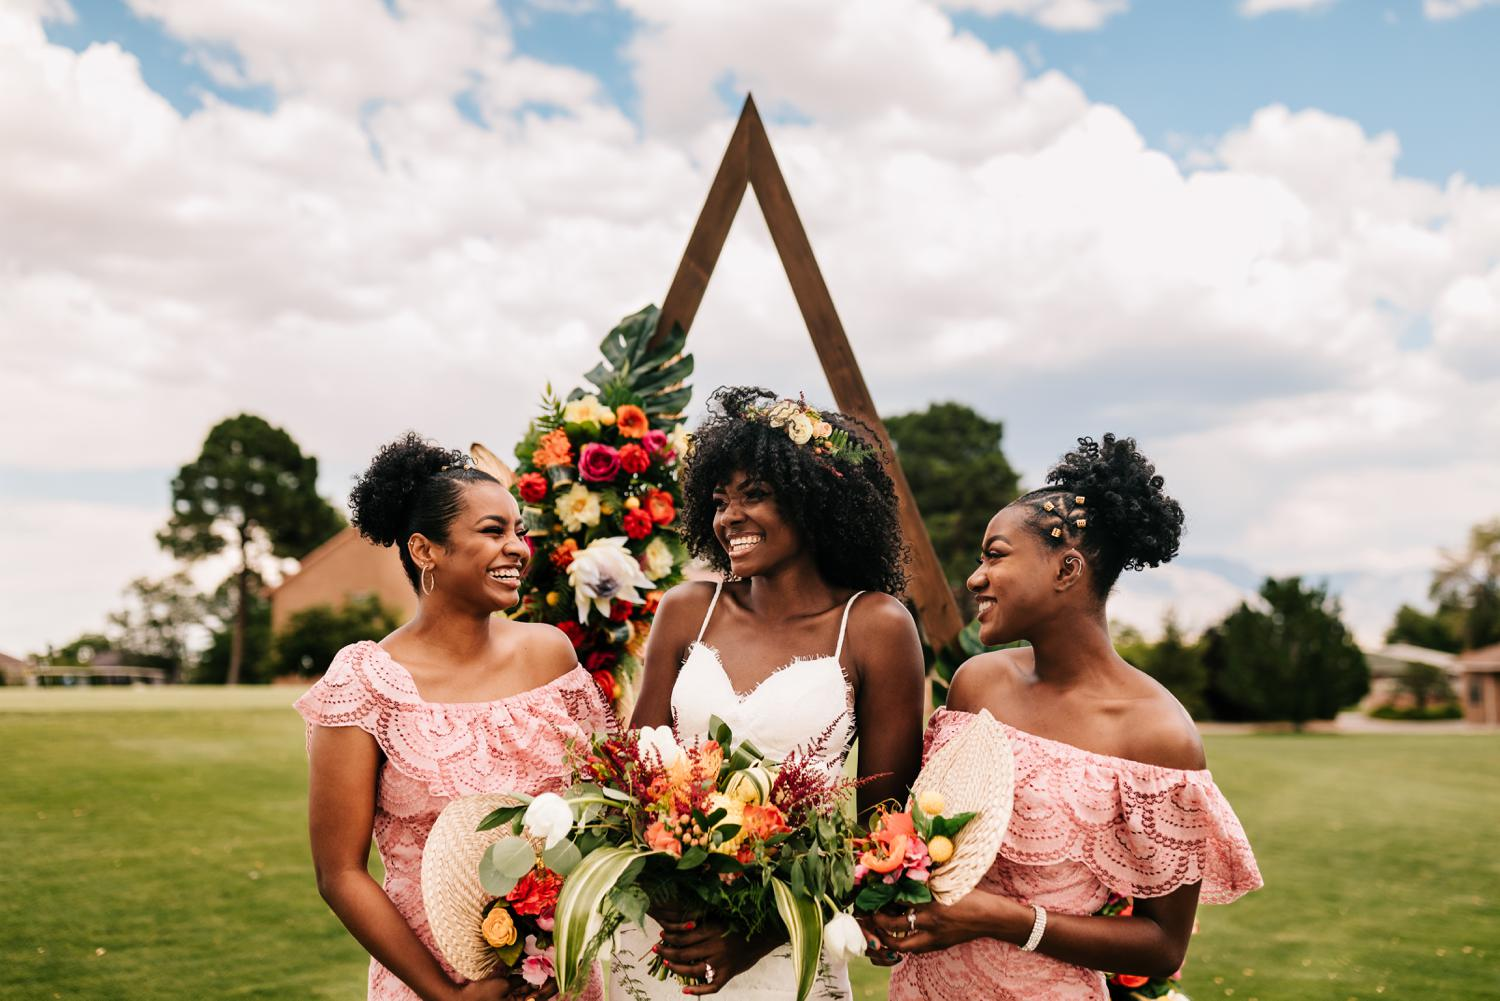 Bridesmaids holding flower fan bouquets and laughing under flower arch in New Mexico